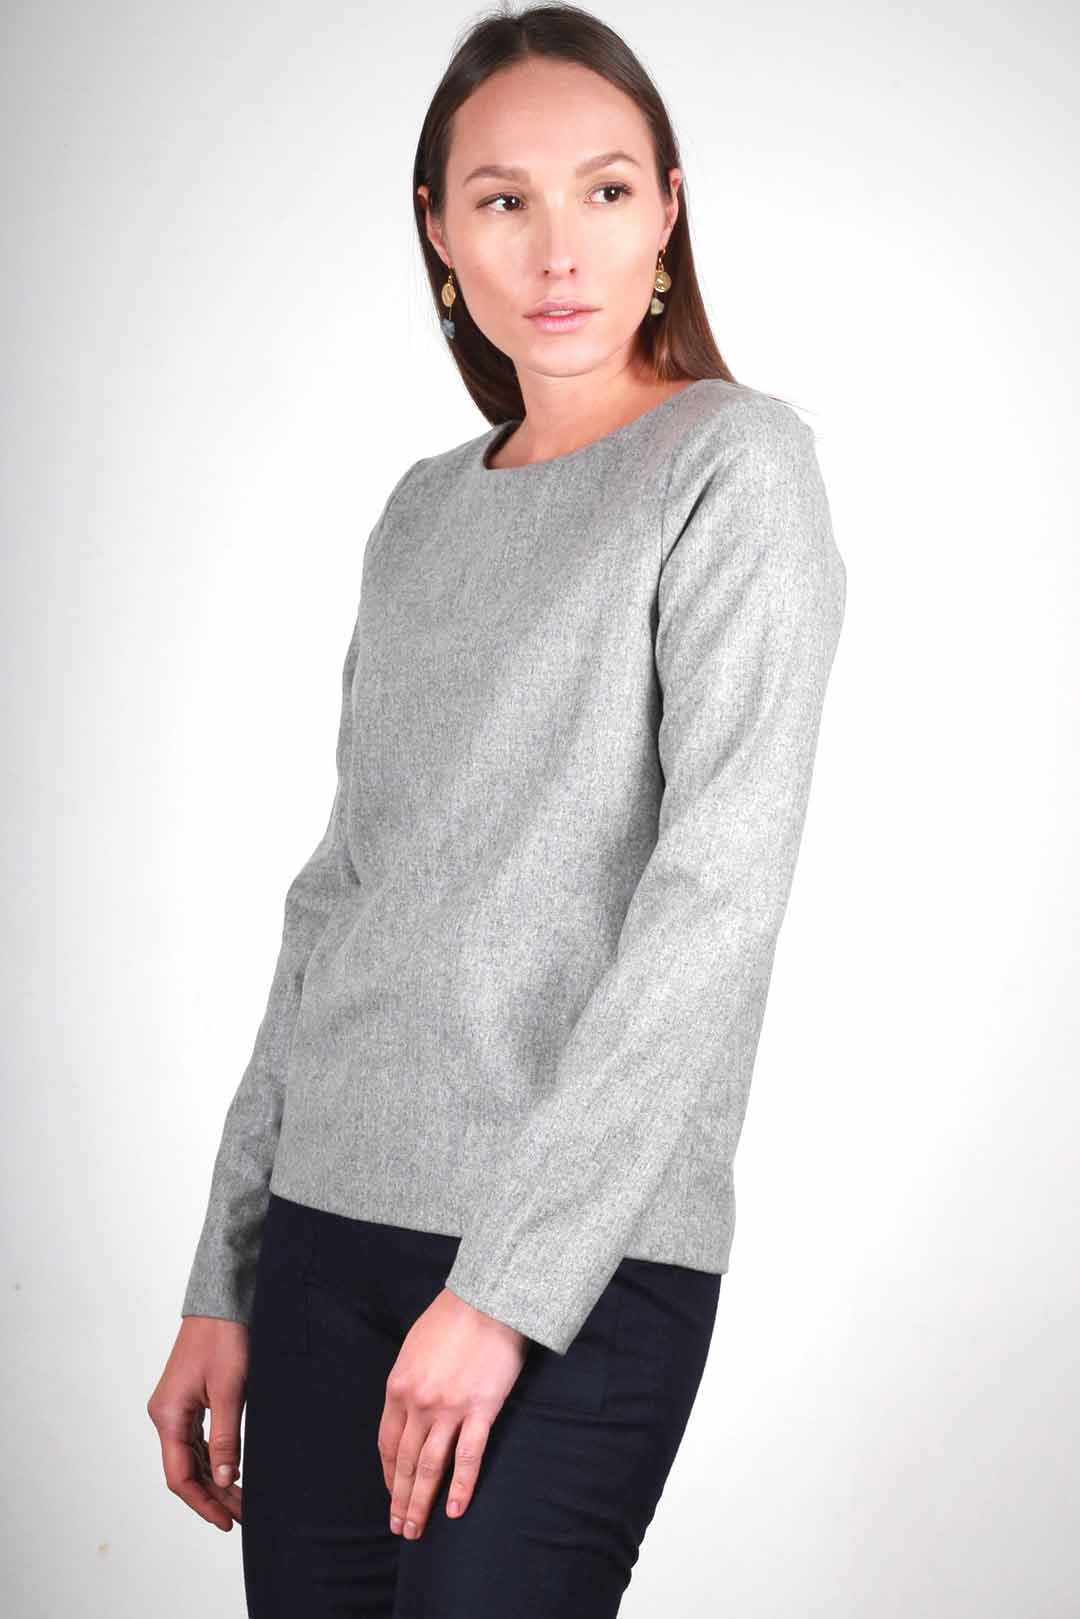 TOPS Archives ~ Atode - Vetement femme chic, classe et éco-responsable Made  in France 4a3f50d9ac0d